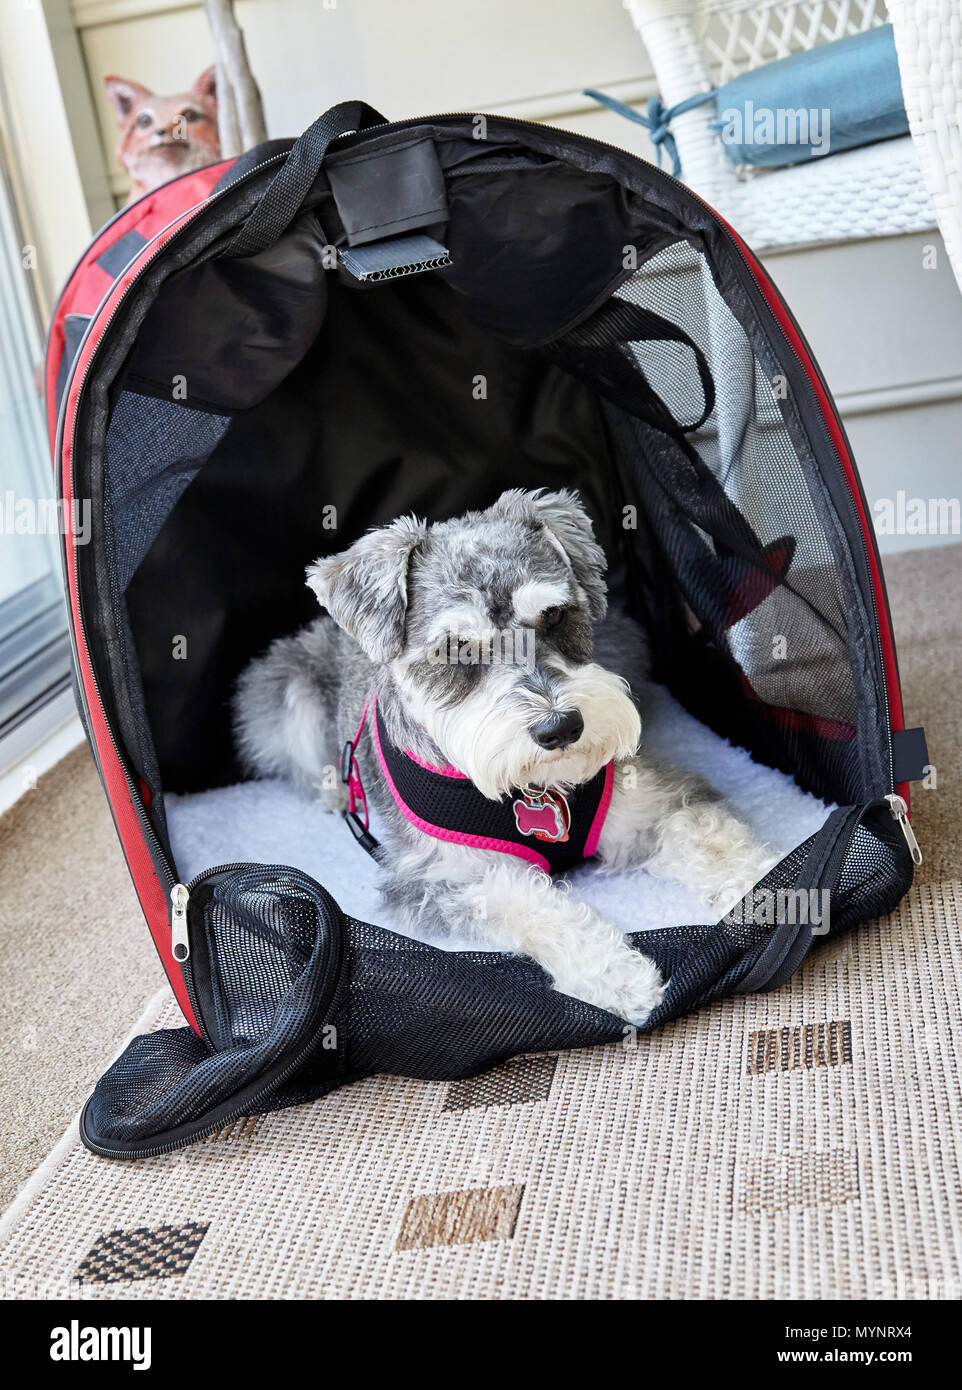 Miniature Schnauzer dog in doggie bed - Stock Image